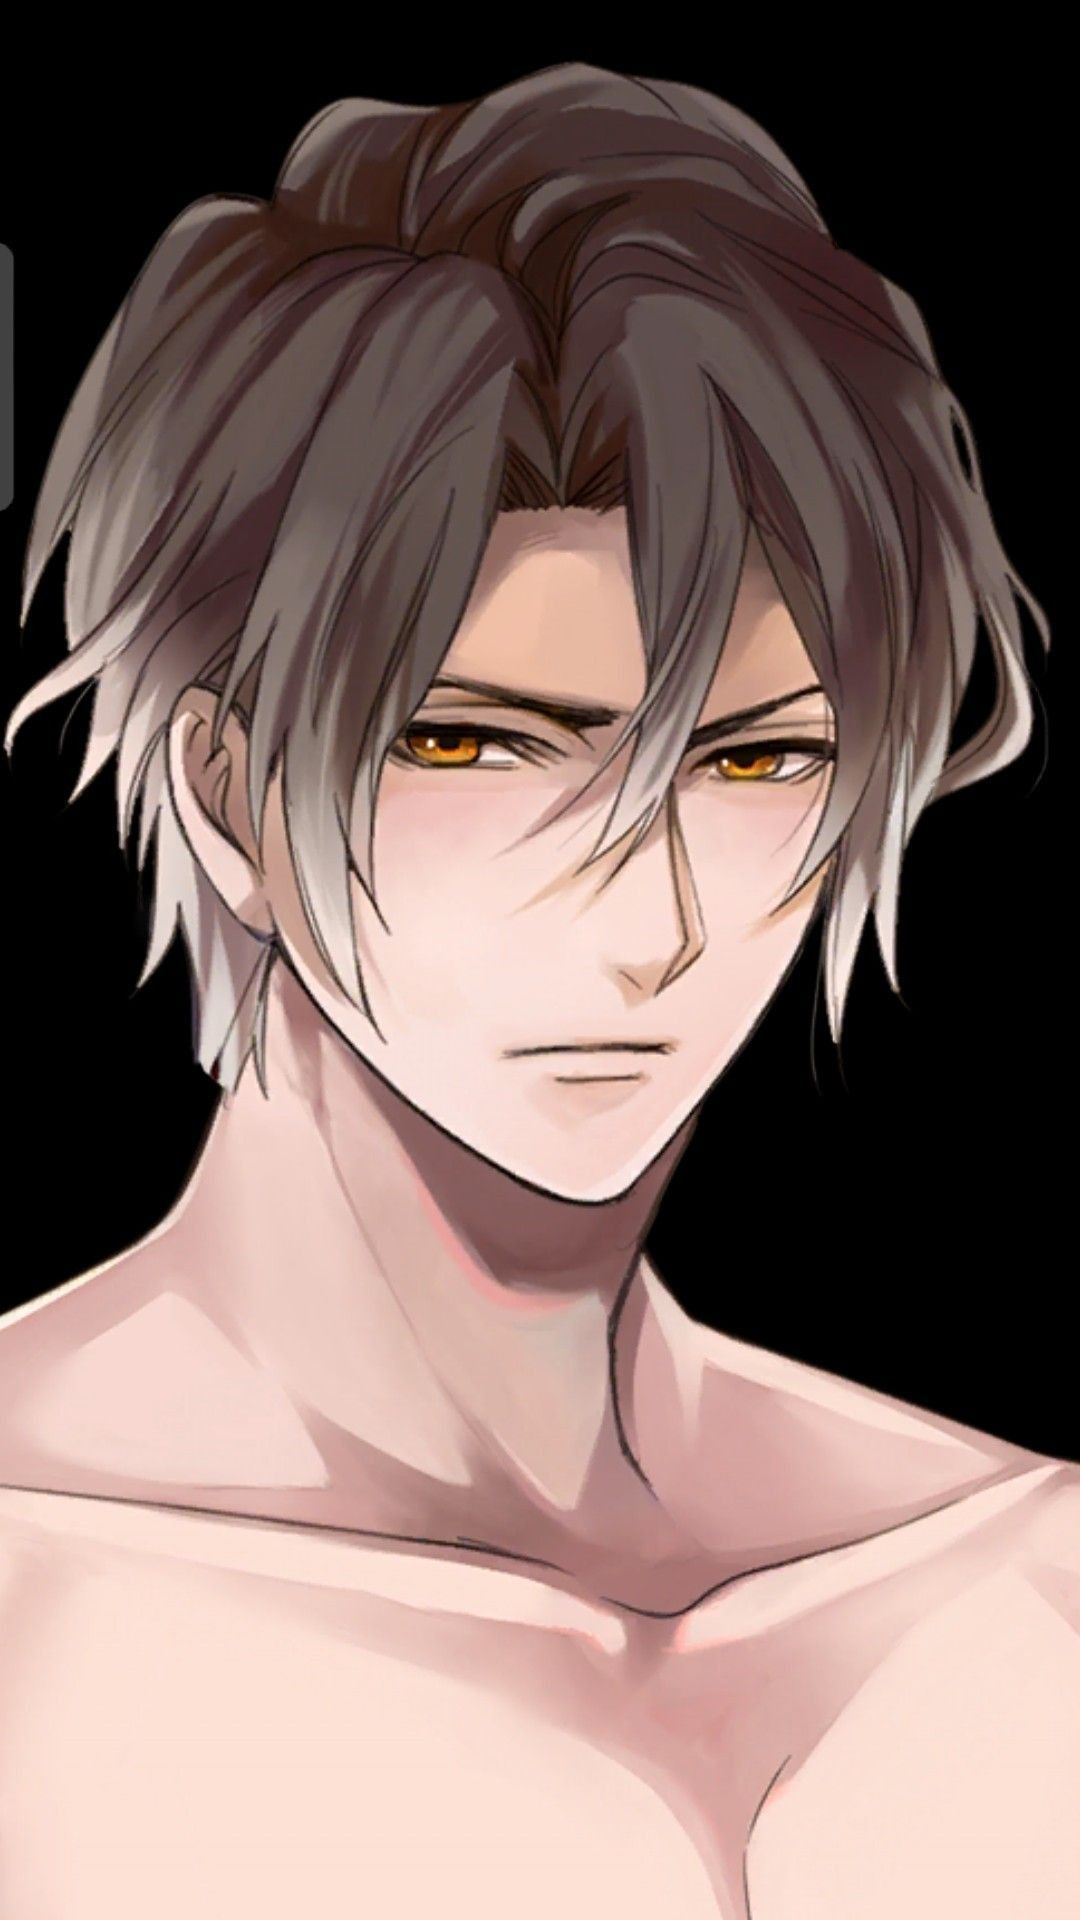 Handsome Anime Face : handsome, anime, Erika, Falcon, Gaming, Stuff, Handsome, Anime,, Anime, Eyes,